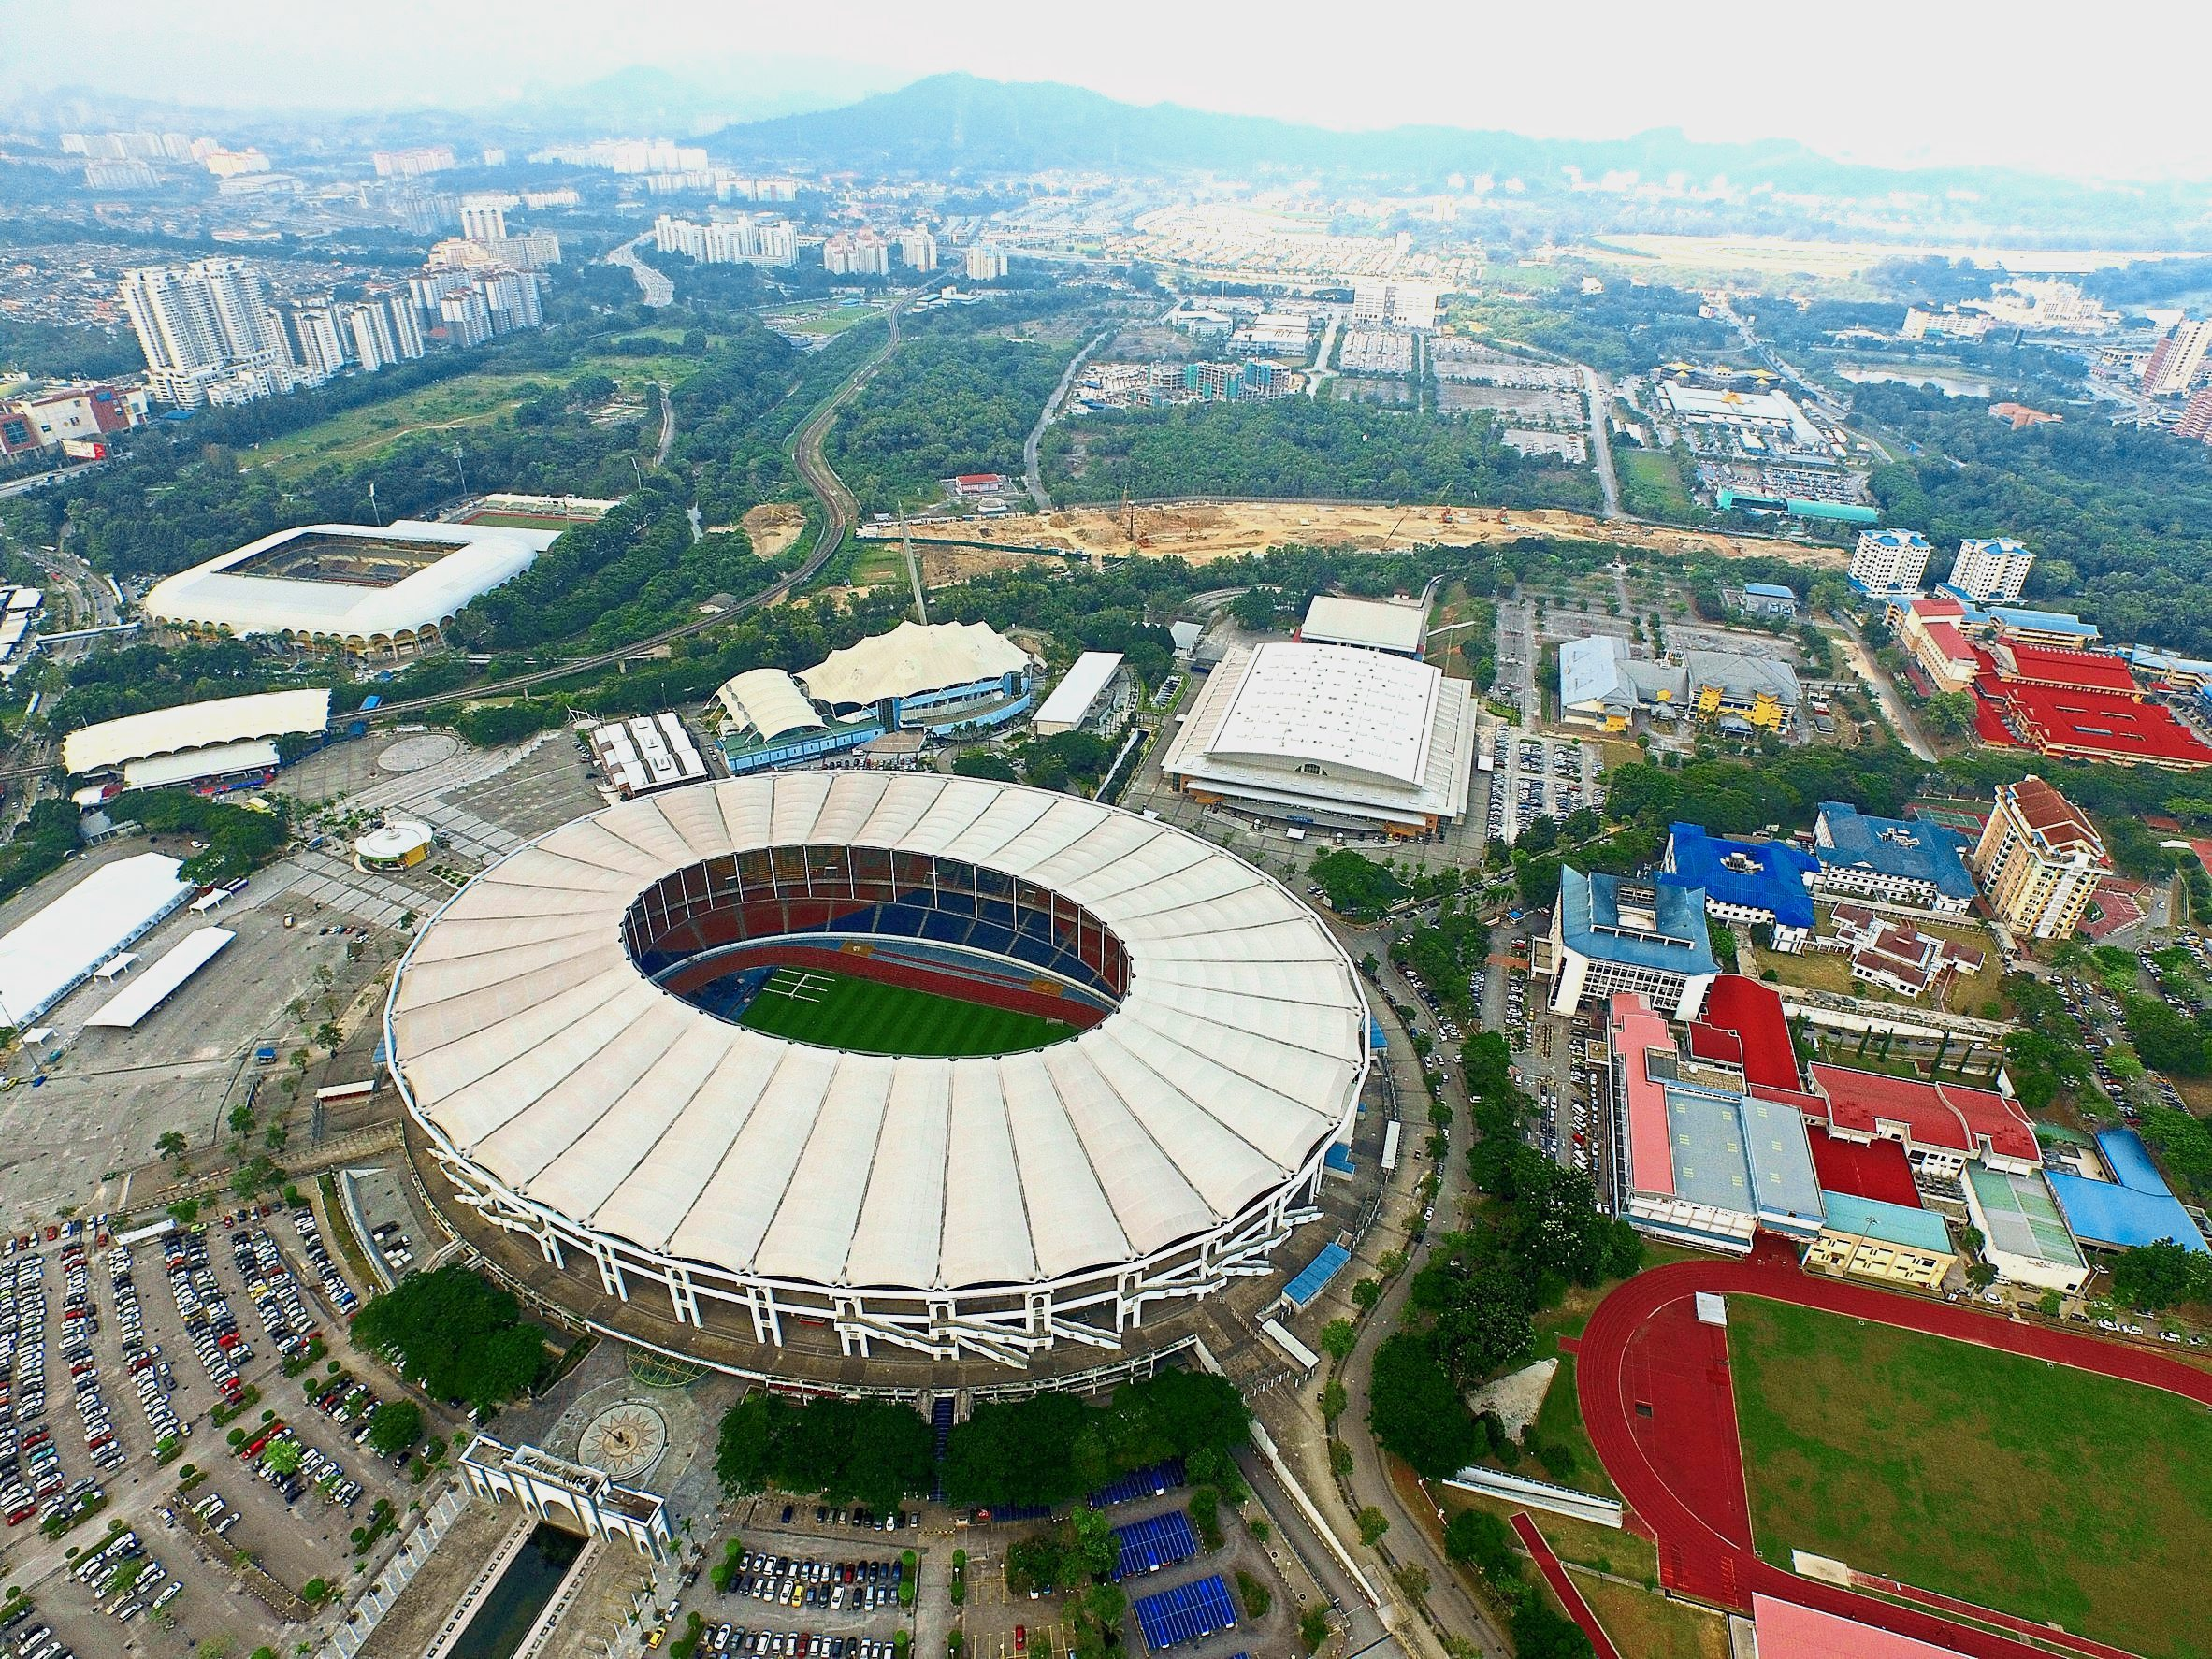 An aerial view if the National Stadium in Bukit Jalil, June 30, 2015. GLENN GUAN/The Star